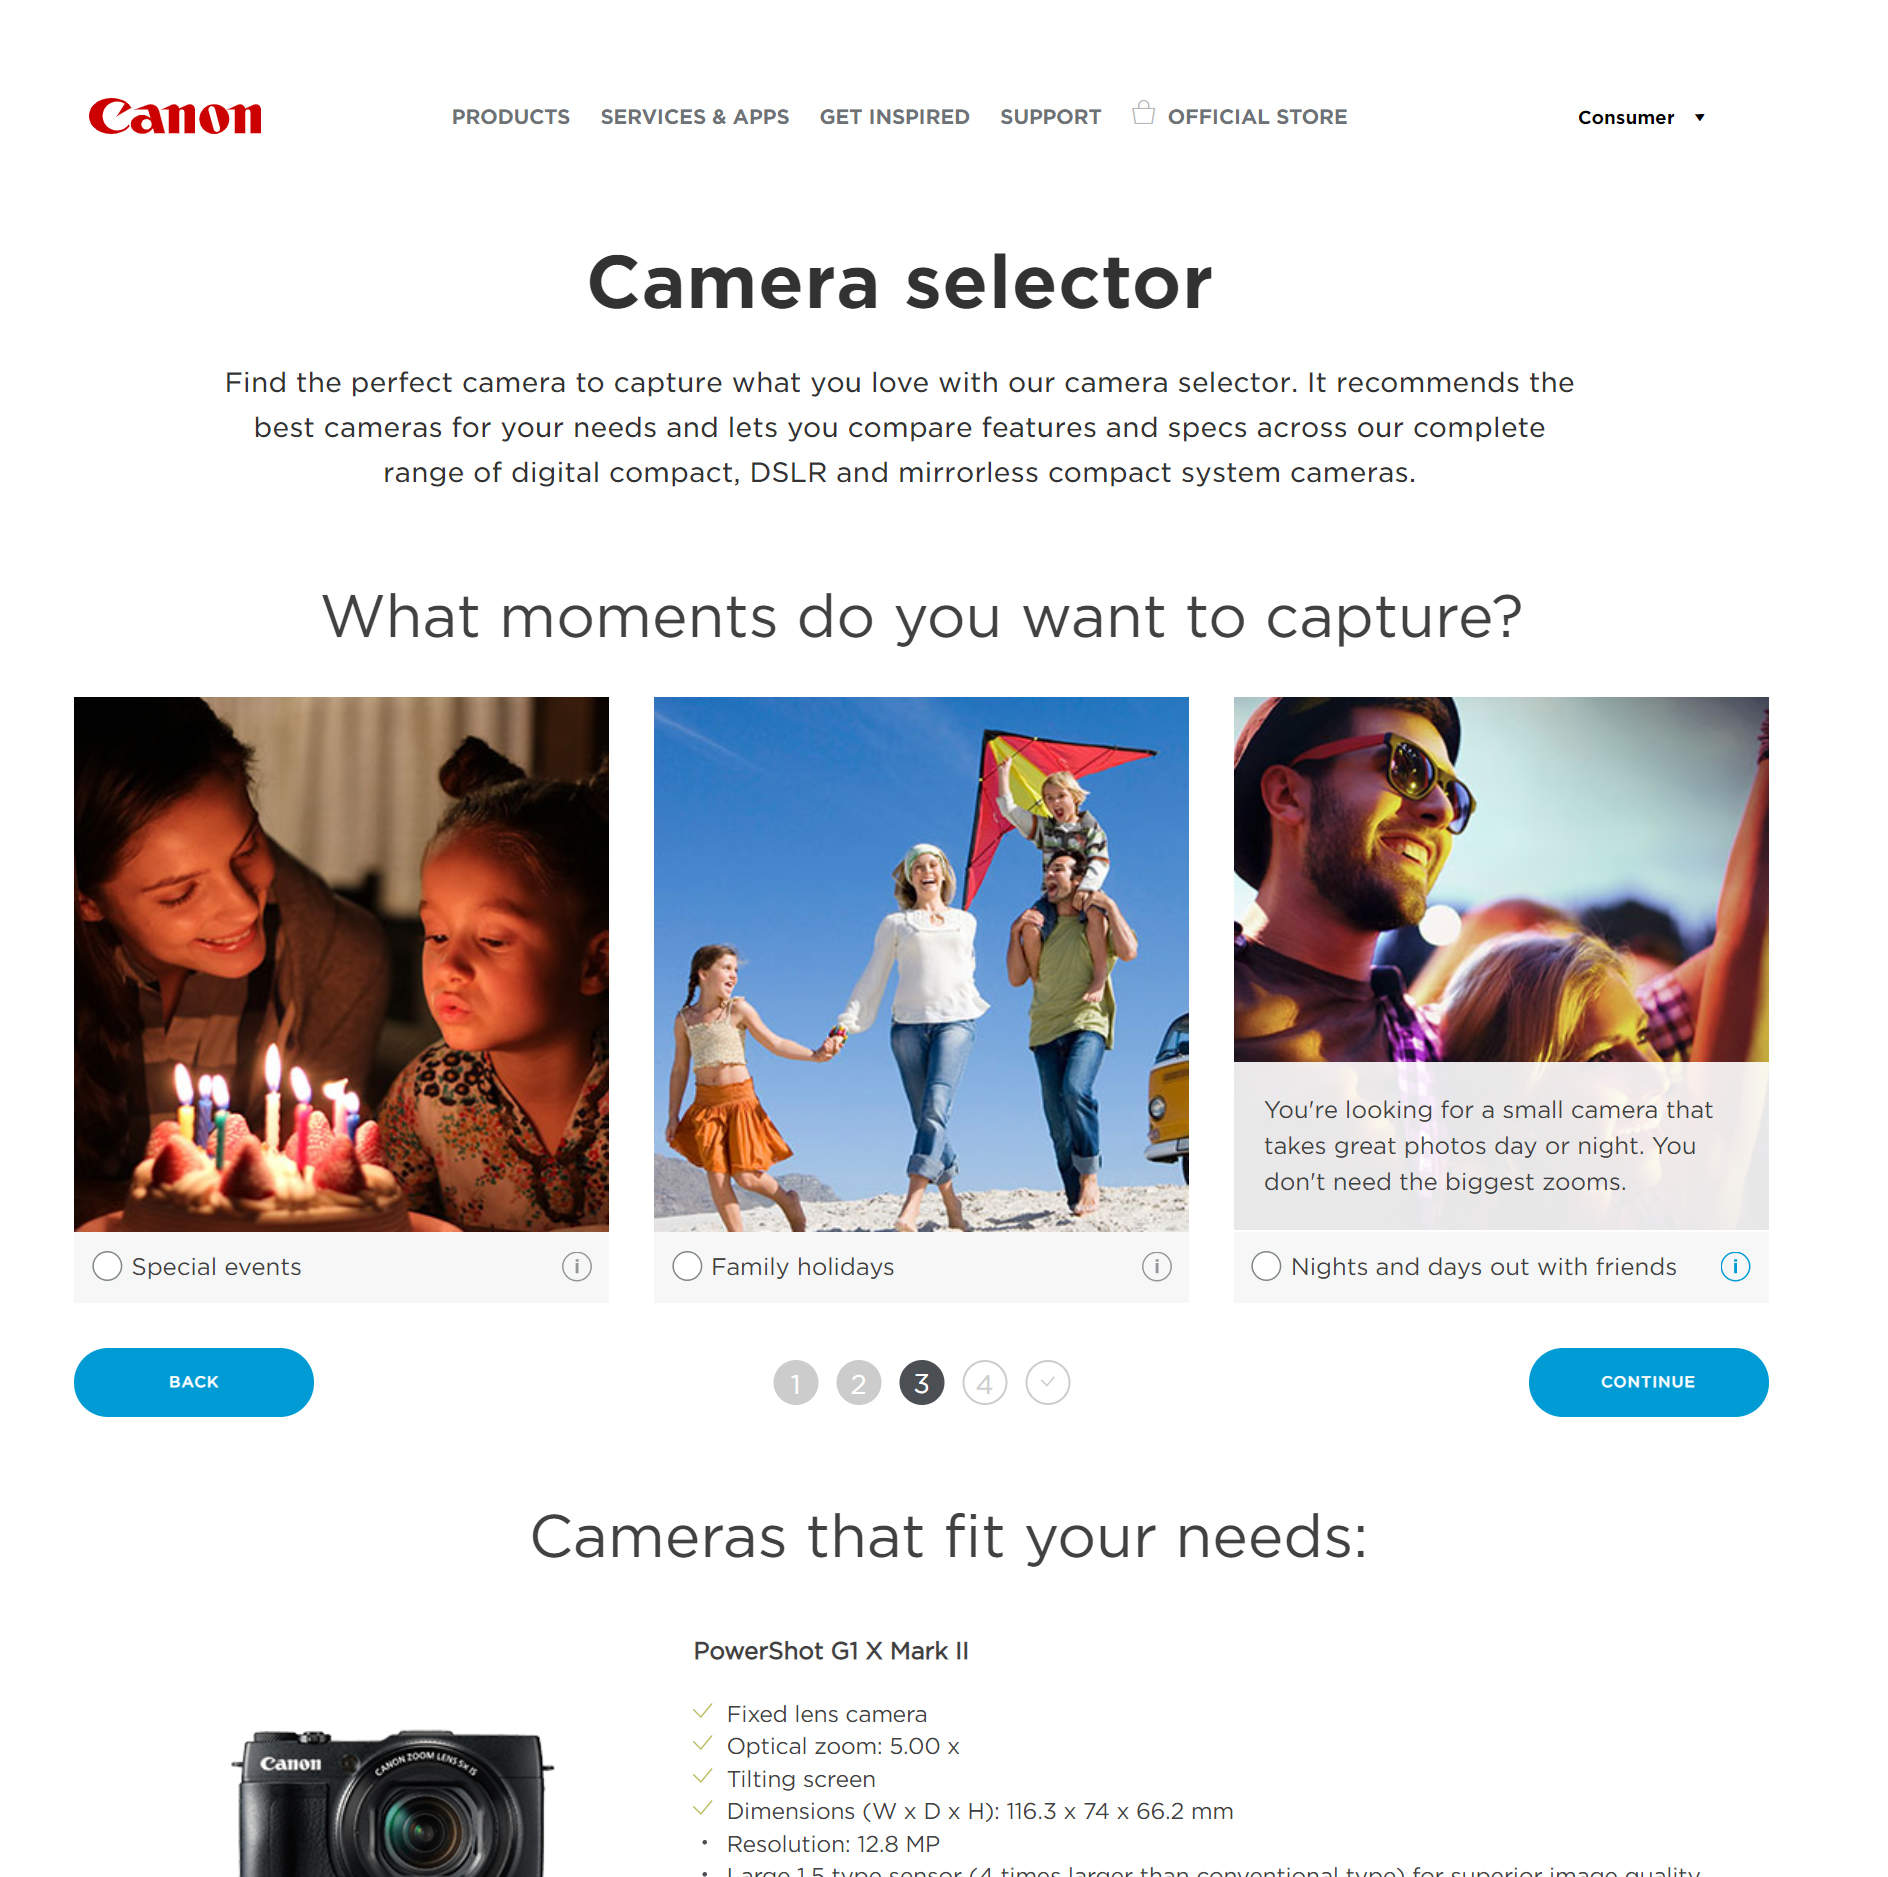 Smart Assistant AI is used by Canon to advise customers on which camera to buy